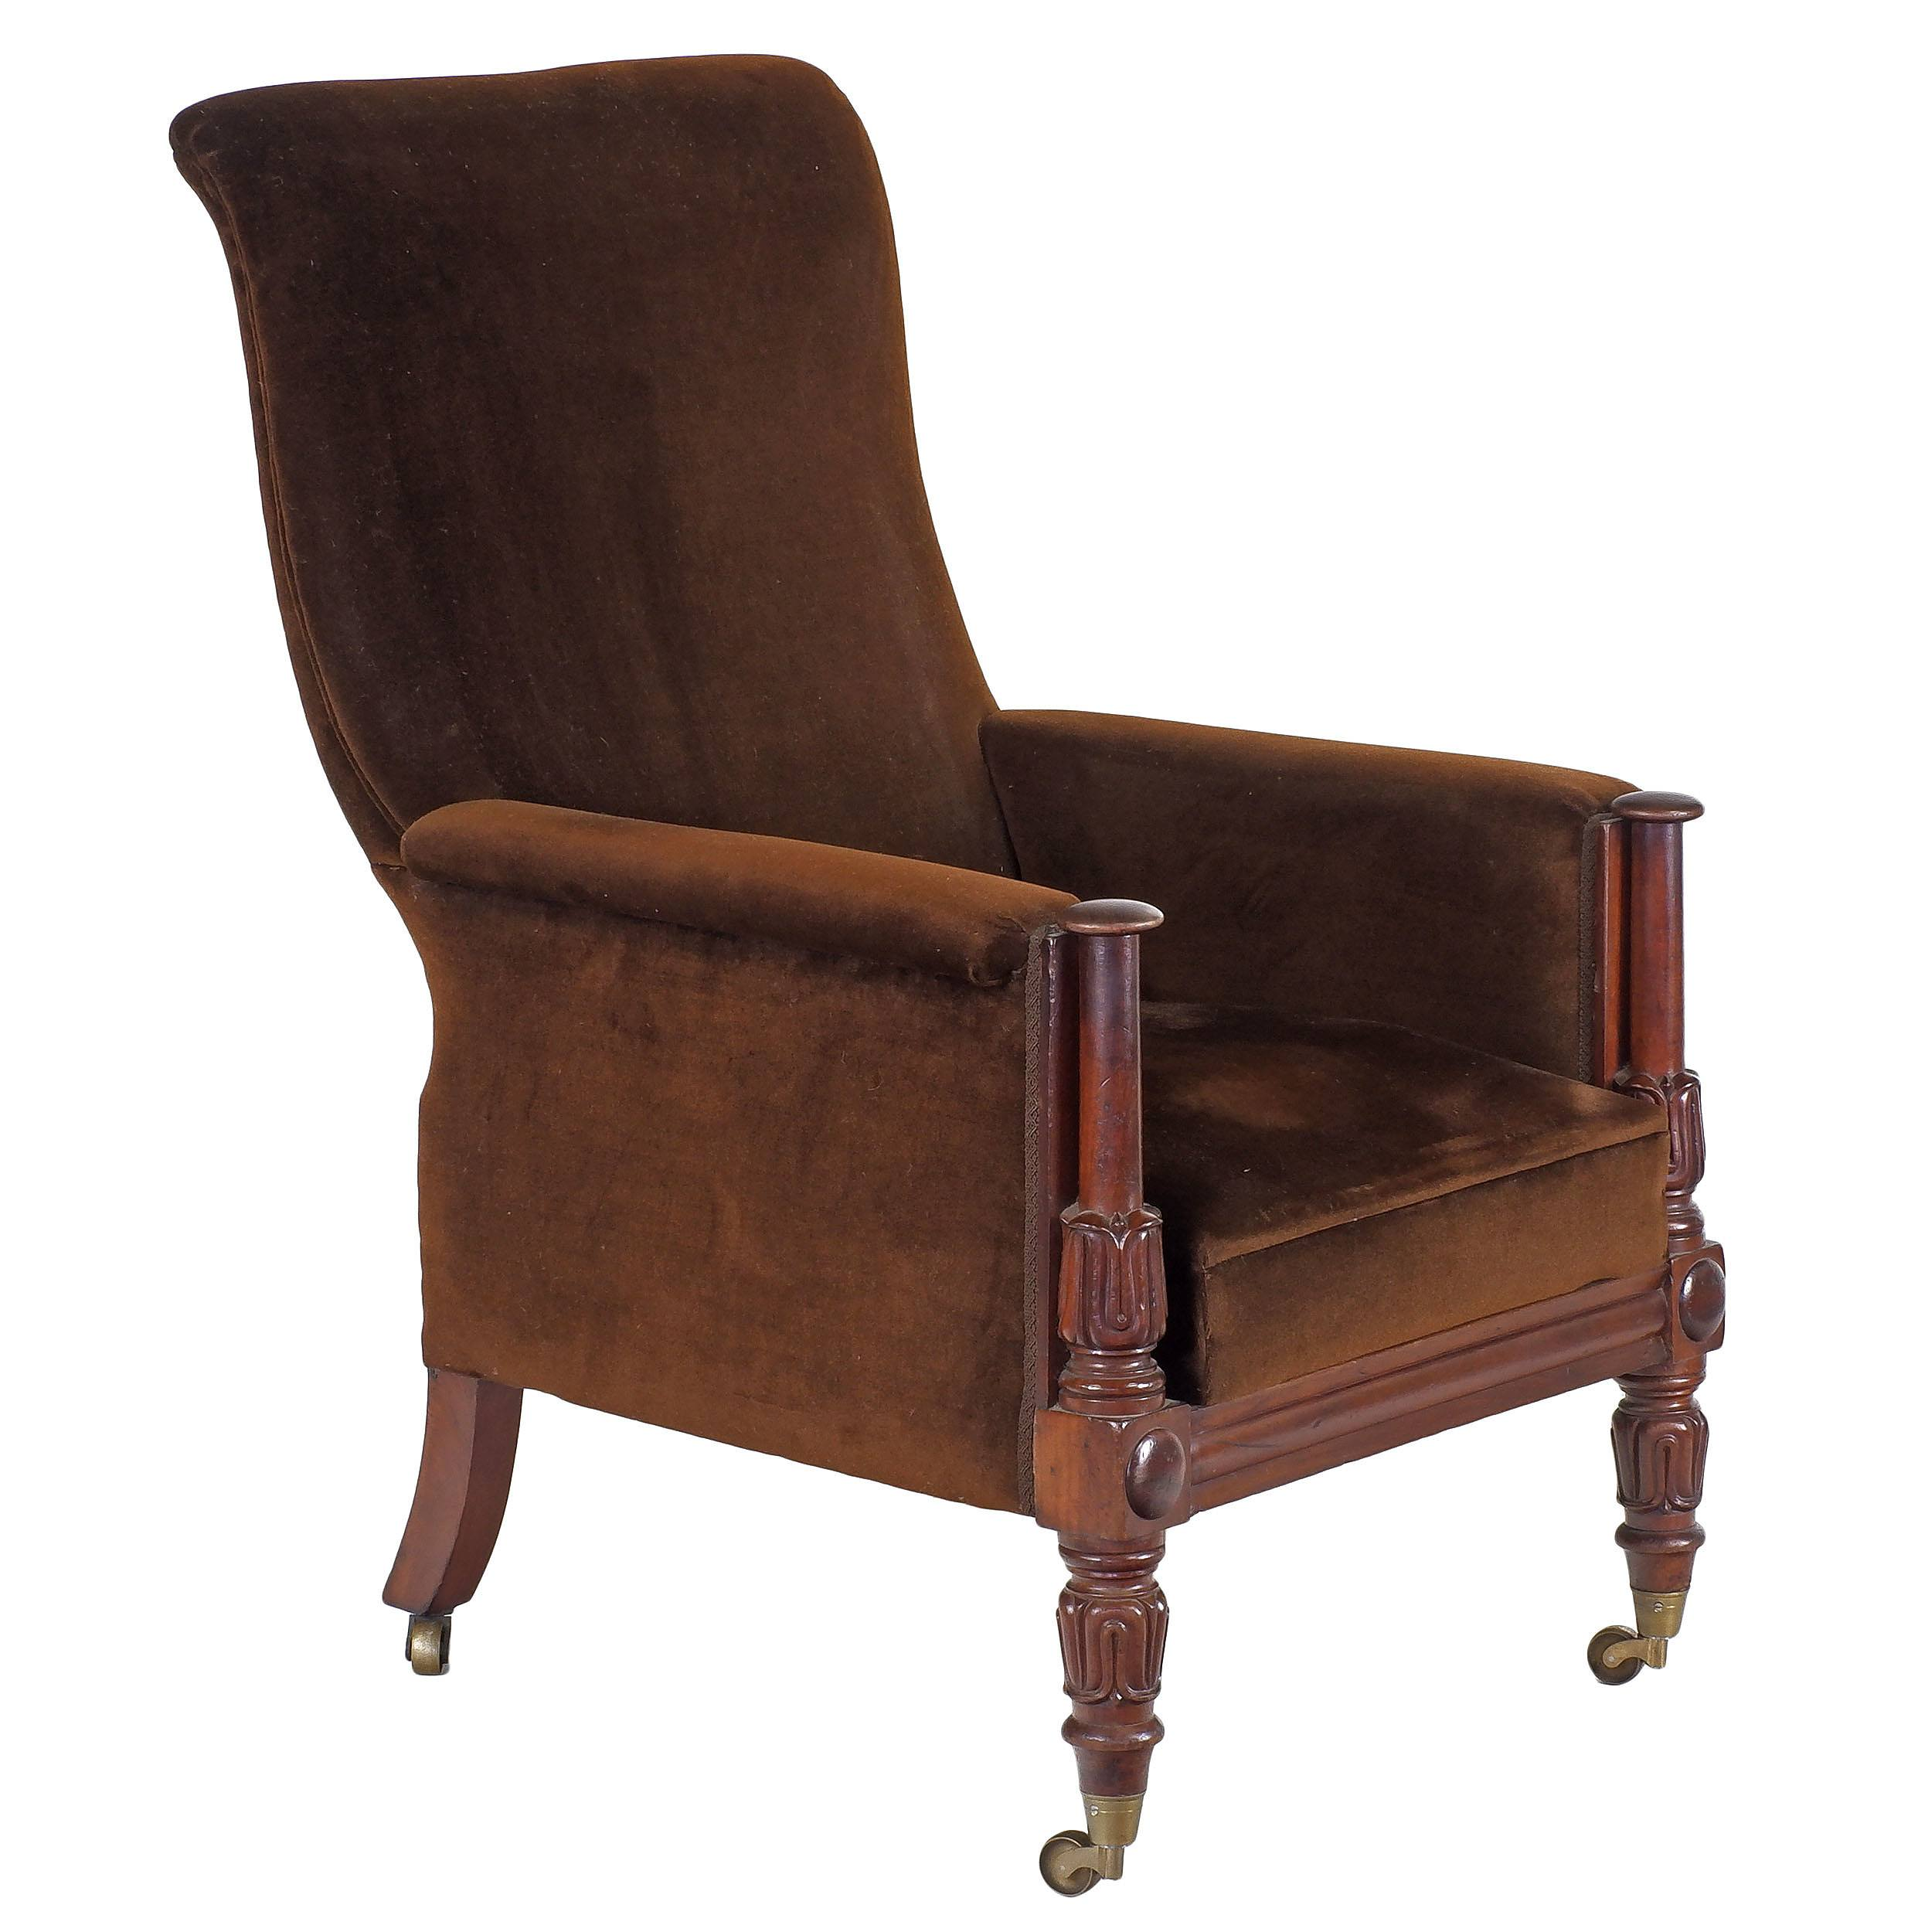 'William IV or Early Victorian Mahogany Upholstered Library Chair Circa 1835-40'